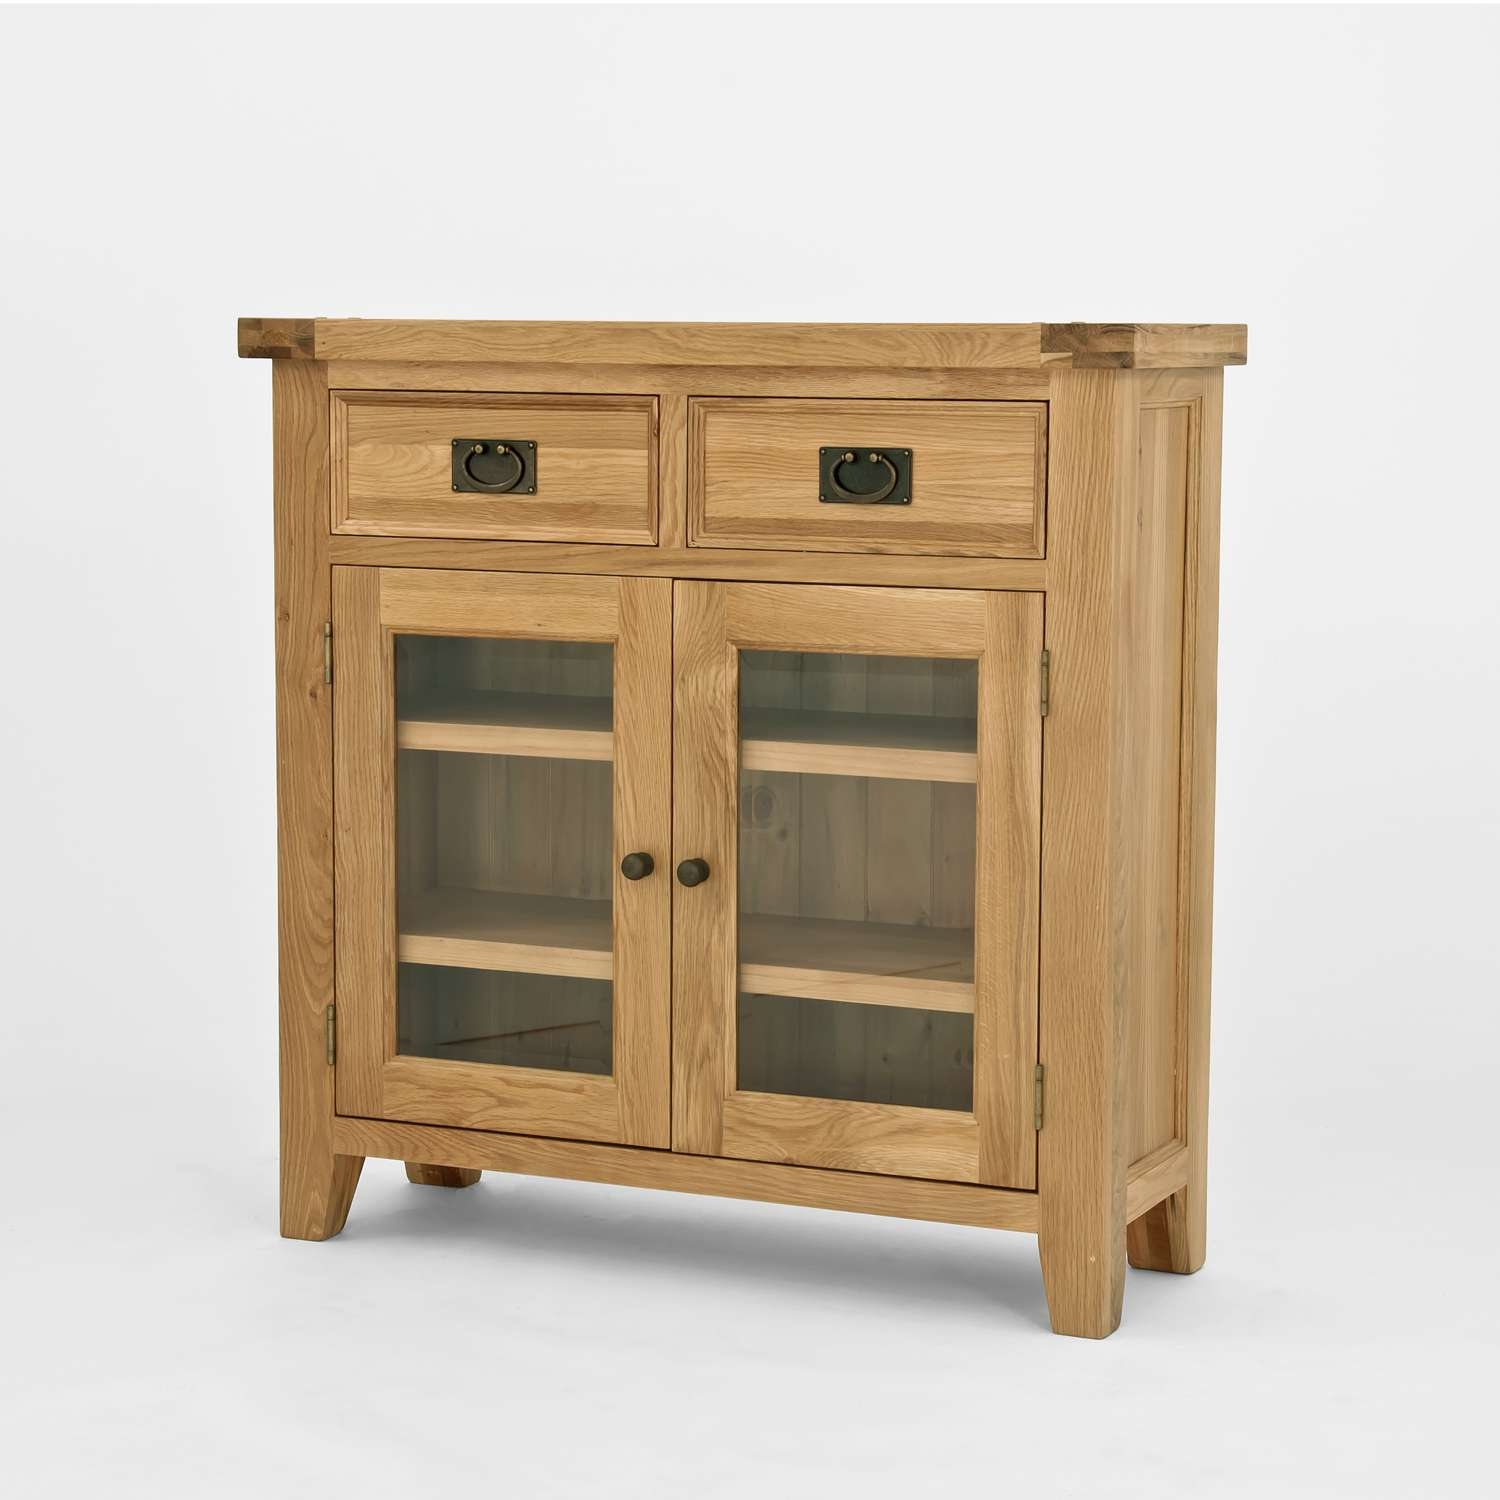 Chiltern Oak Small Sideboard/bookcase With Glass Doors Pertaining To Sideboards With Glass Doors (View 3 of 20)